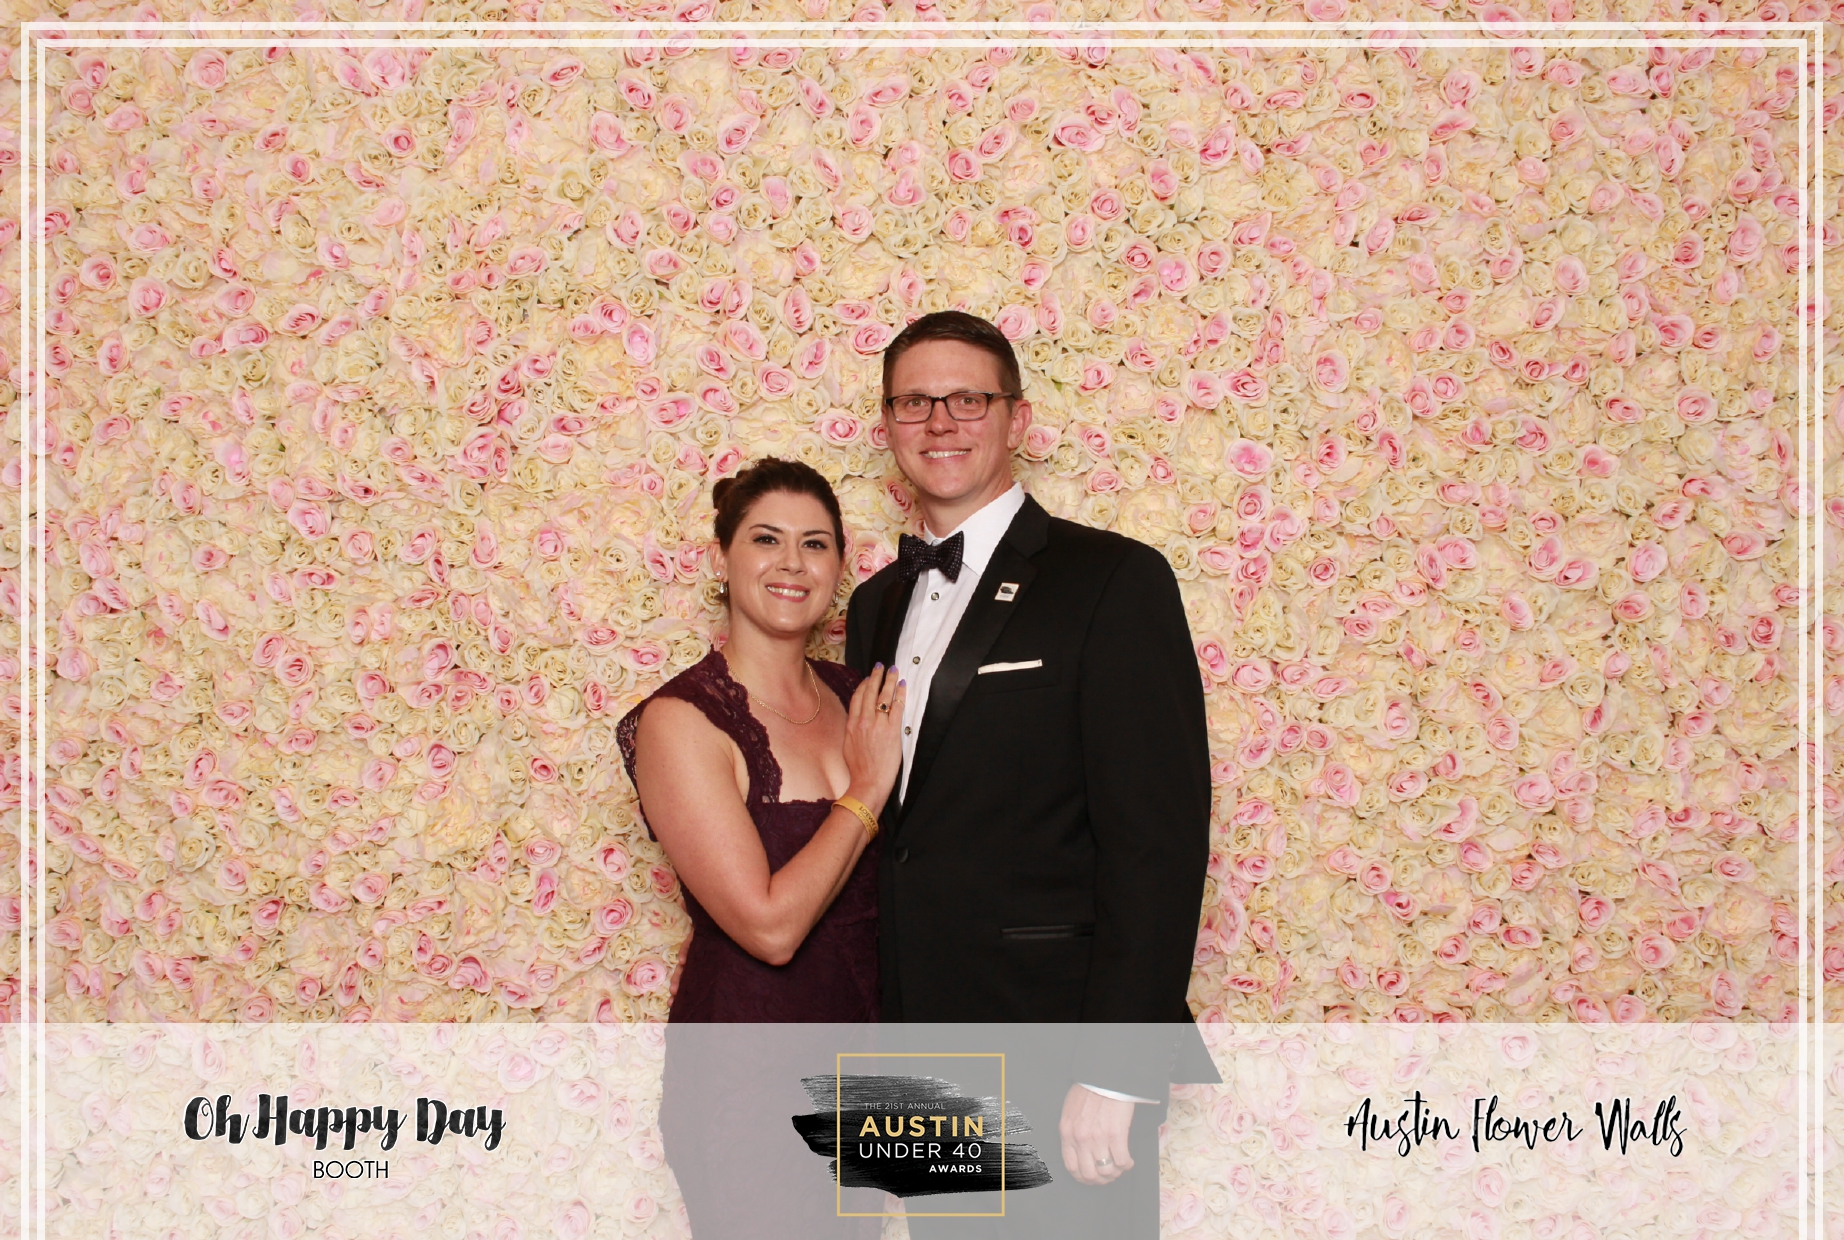 Oh Happy Day Booth - Austin Under 40-39.jpg